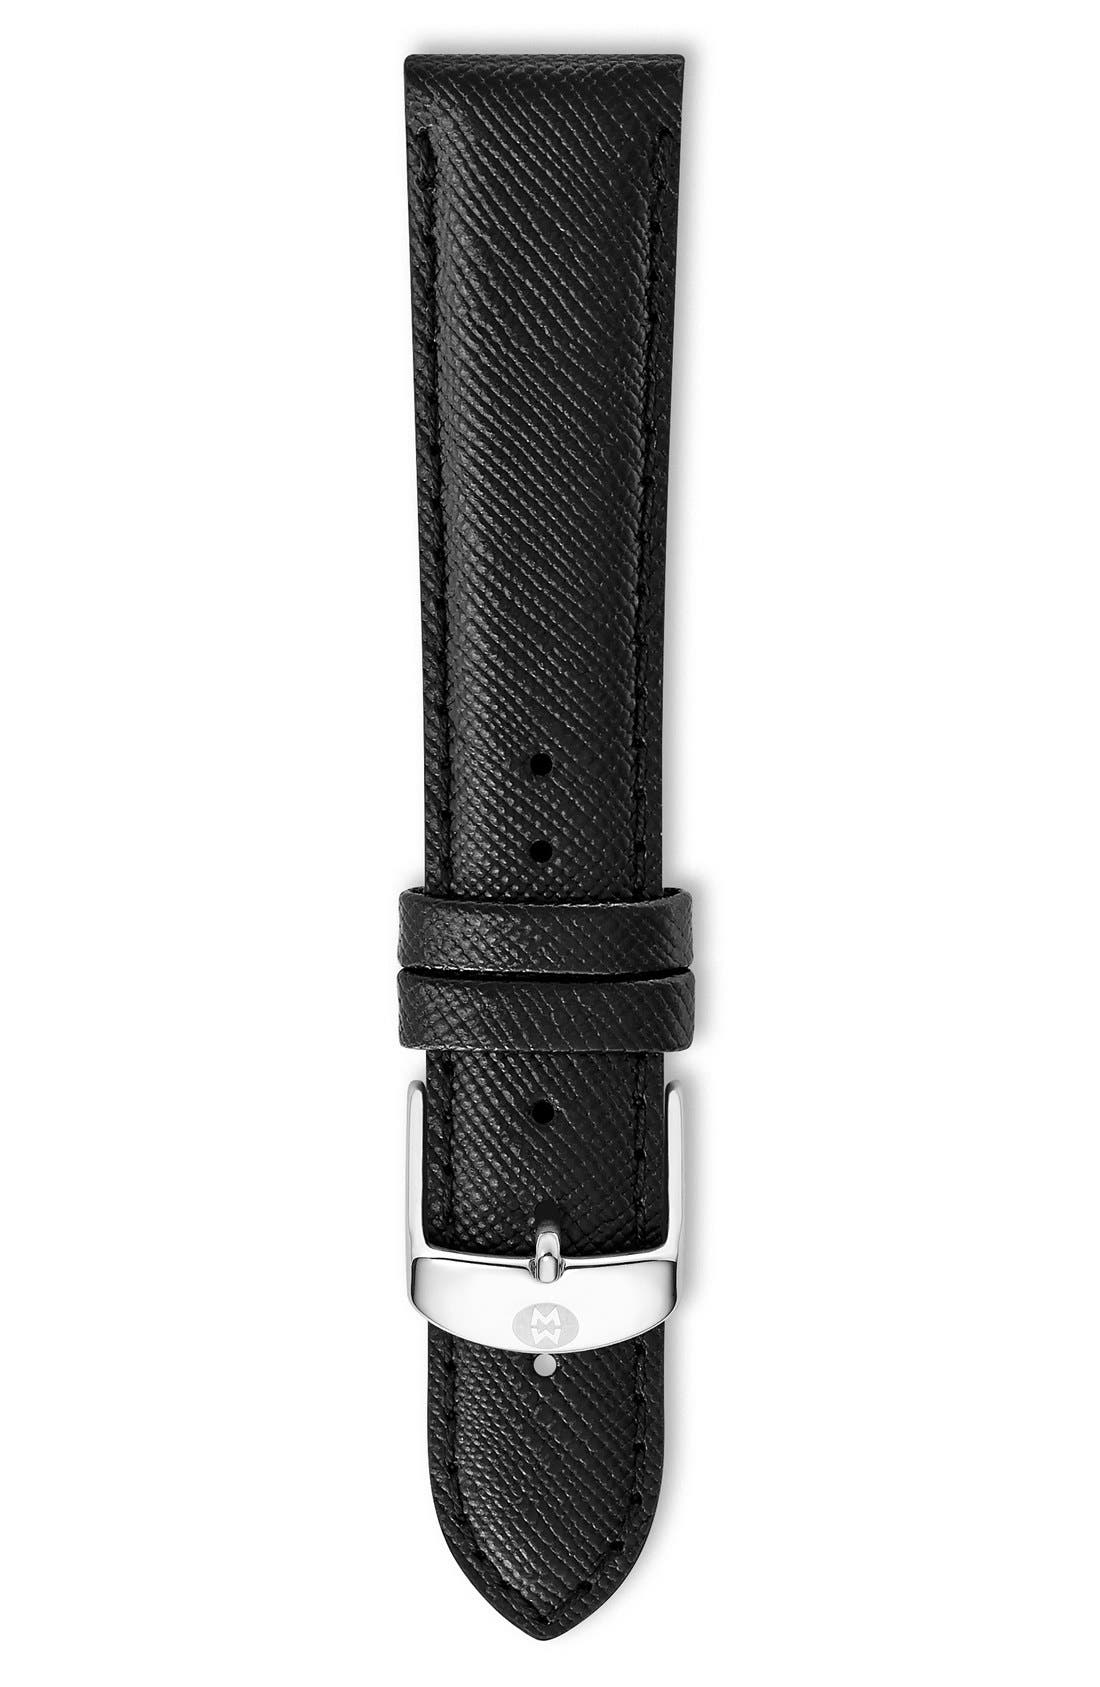 Alternate Image 1 Selected - MICHELE 16mm Saffiano Leather Watch Strap